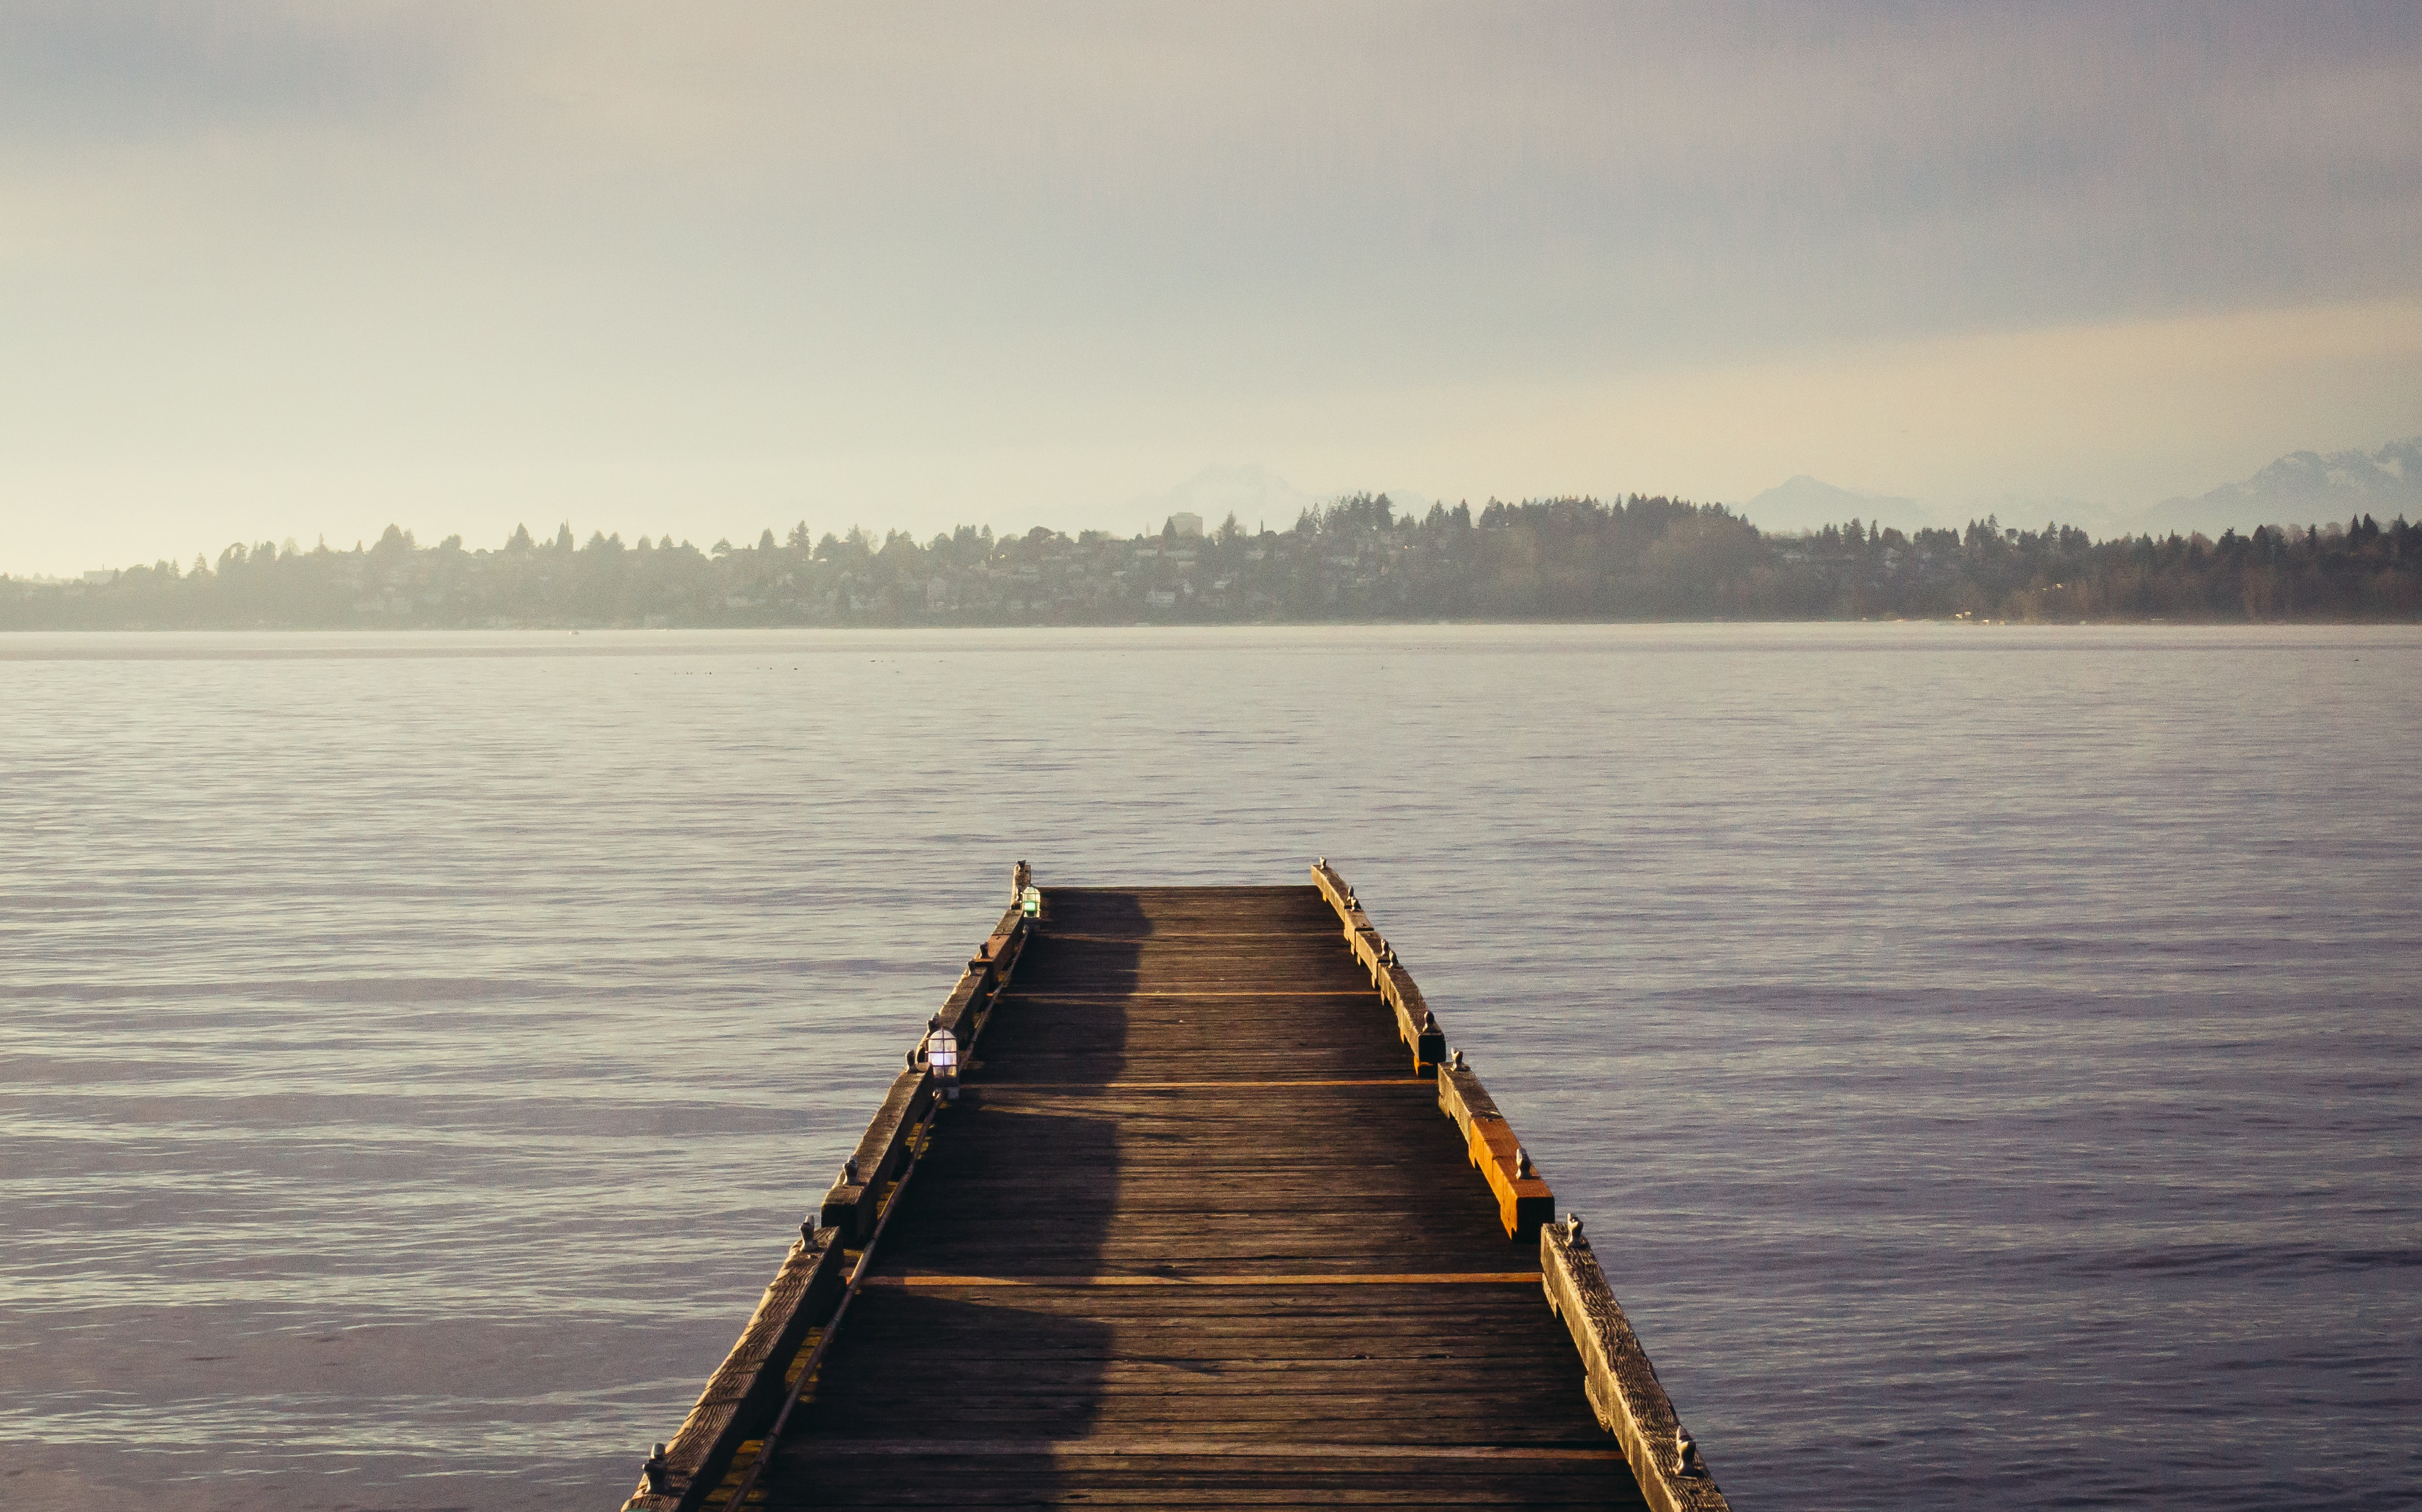 An empty wooden pier on a lake with a woody shore on the horizon